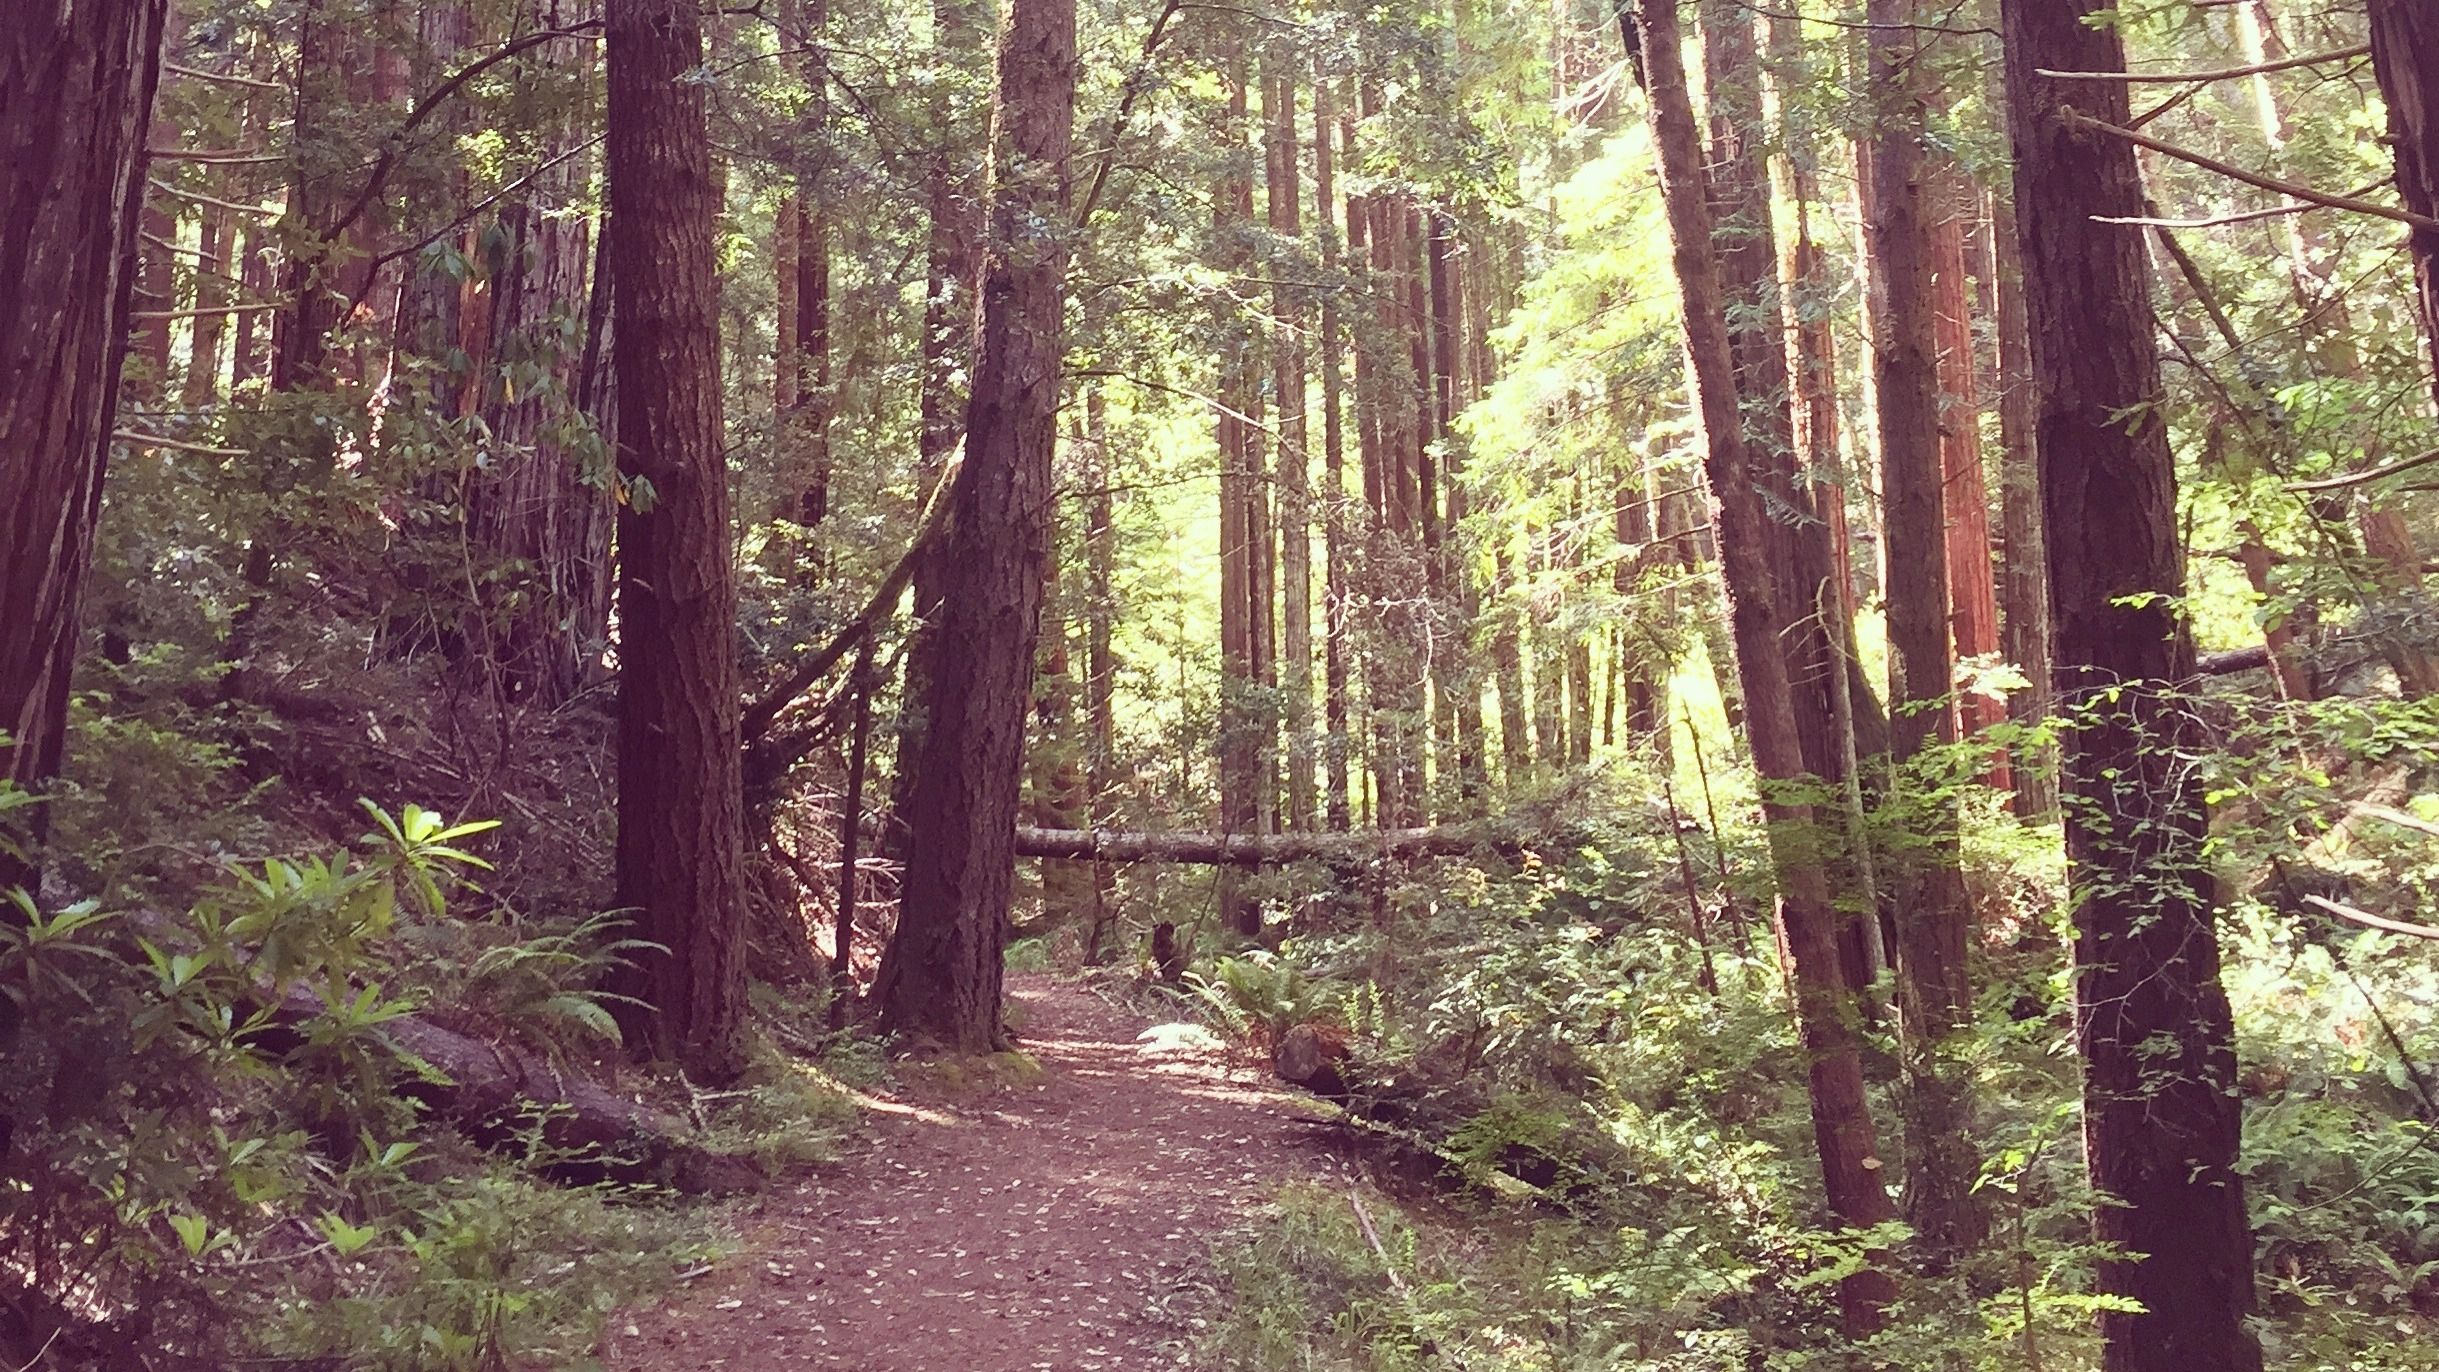 Fall In Love with Nature Hiking for Women (& Introverts)